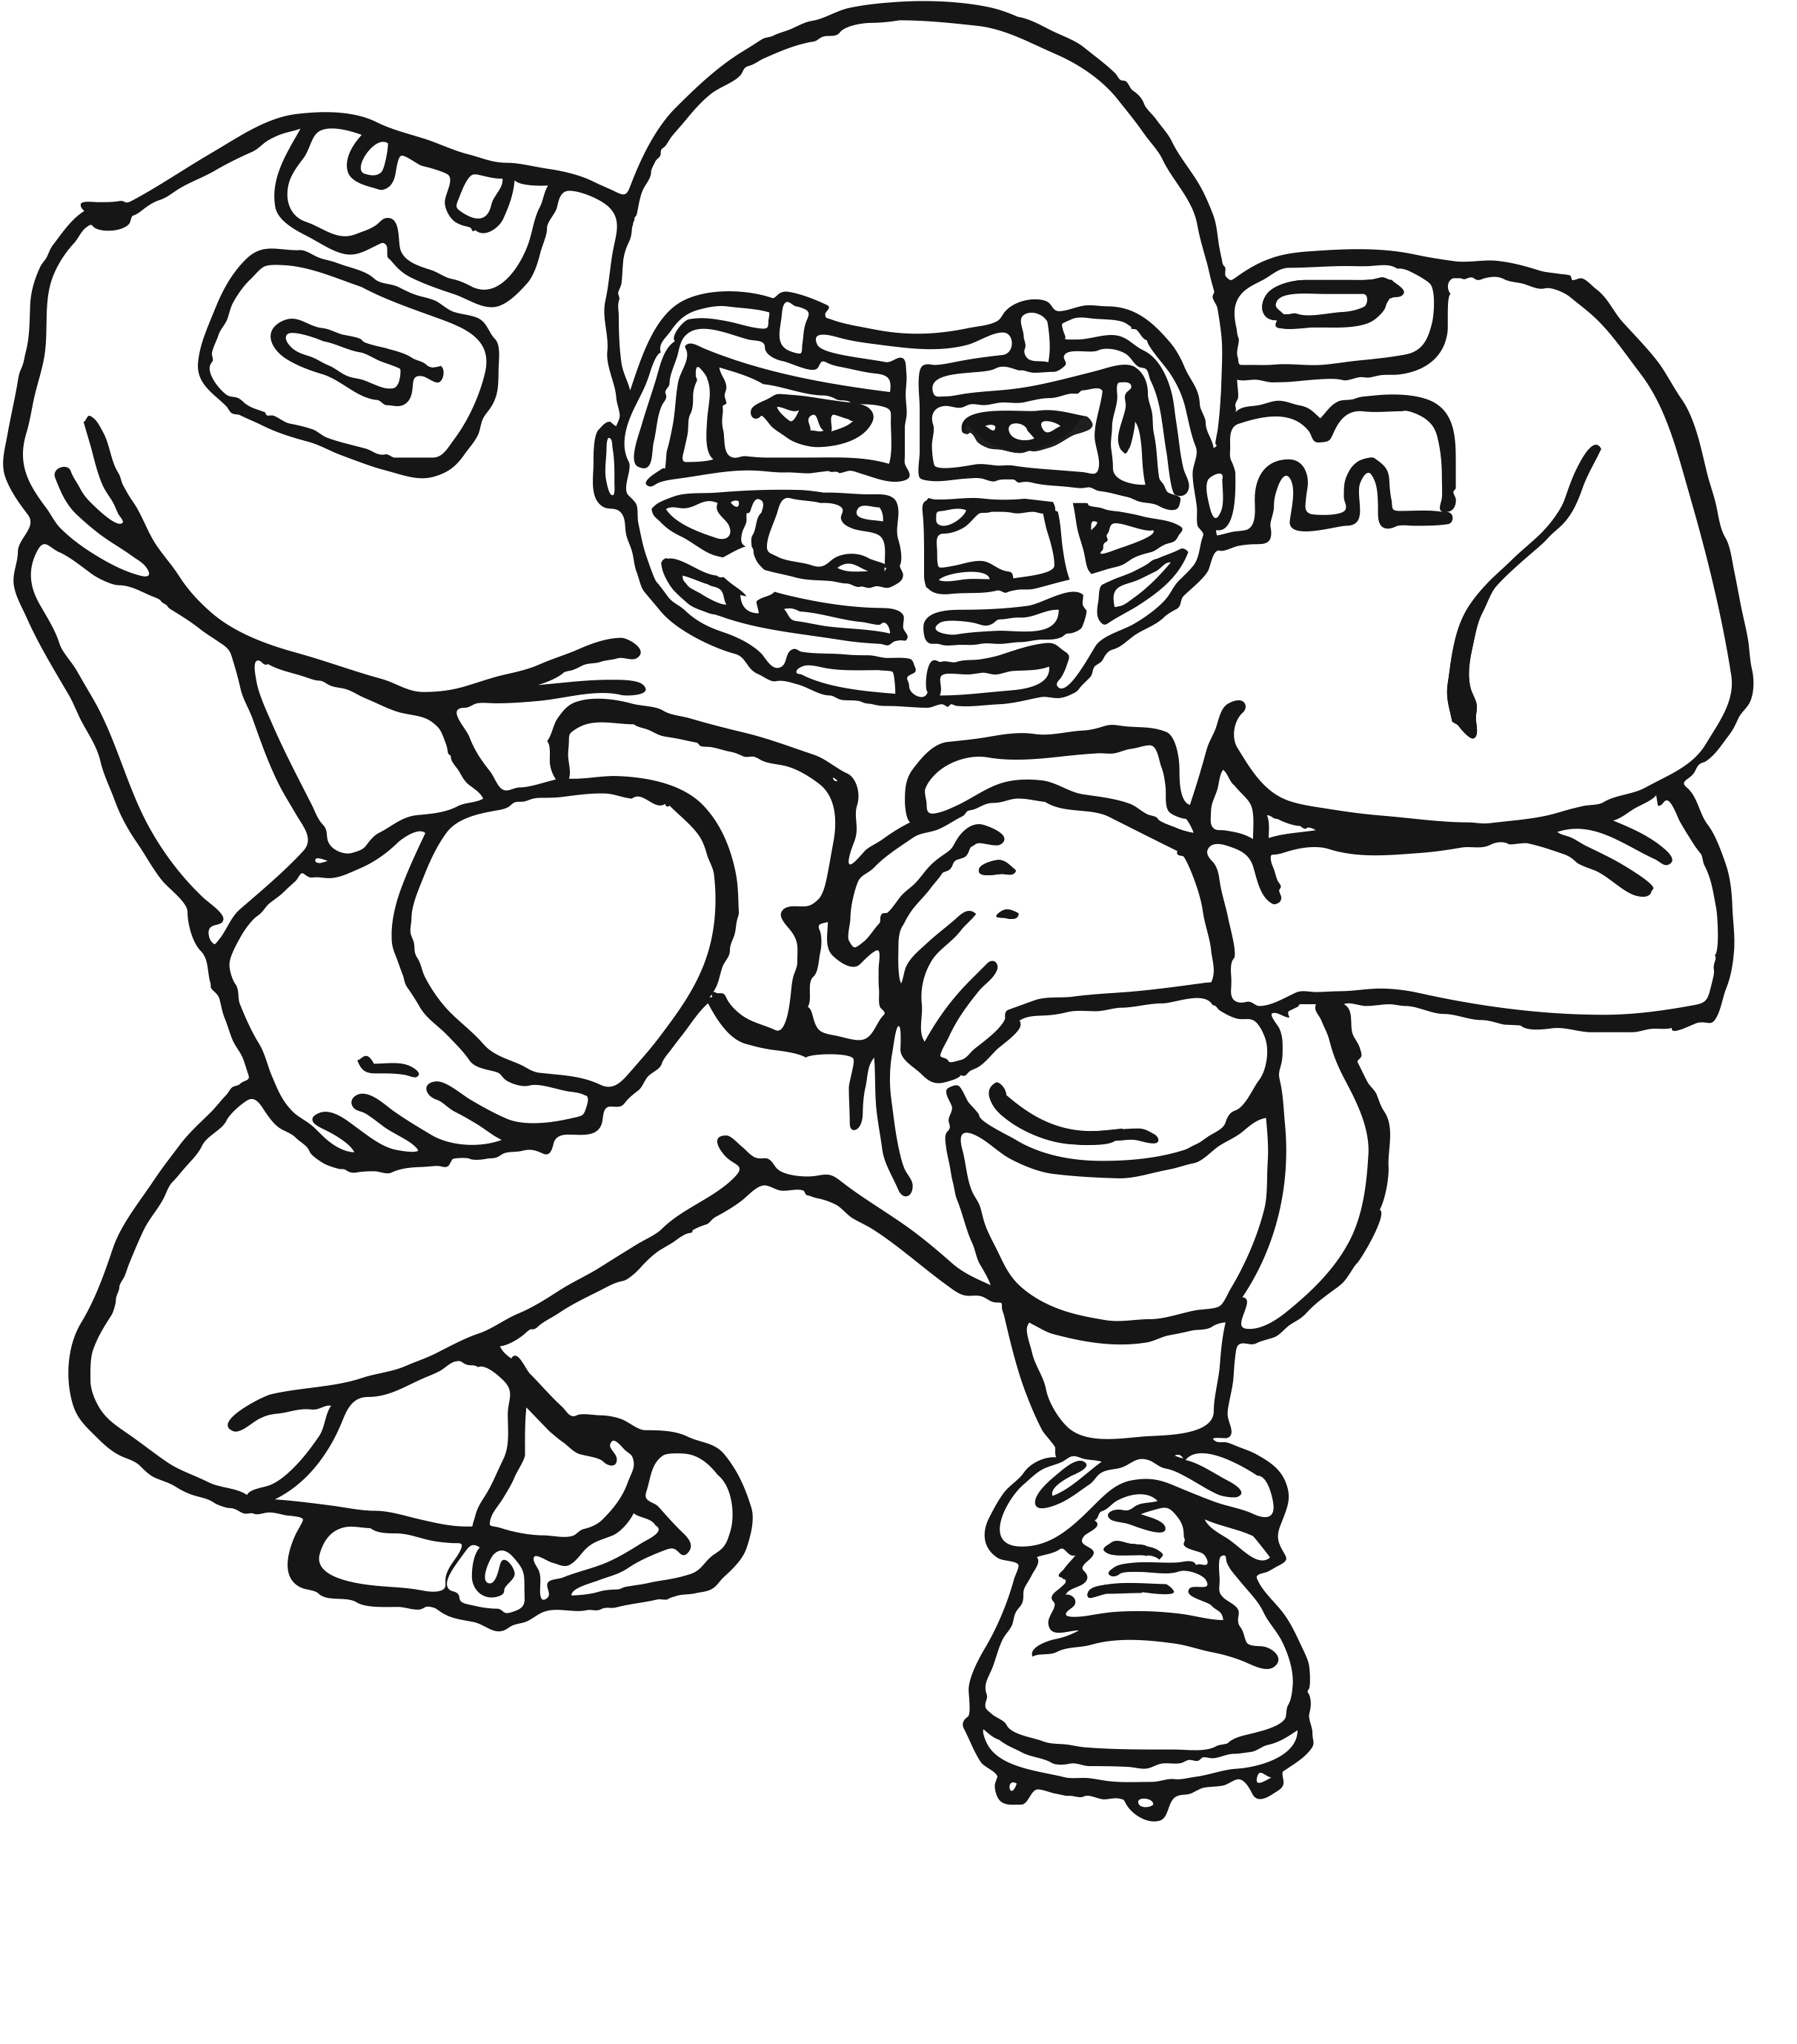 free football coloring pages free printable football coloring pages for kids best free coloring pages football